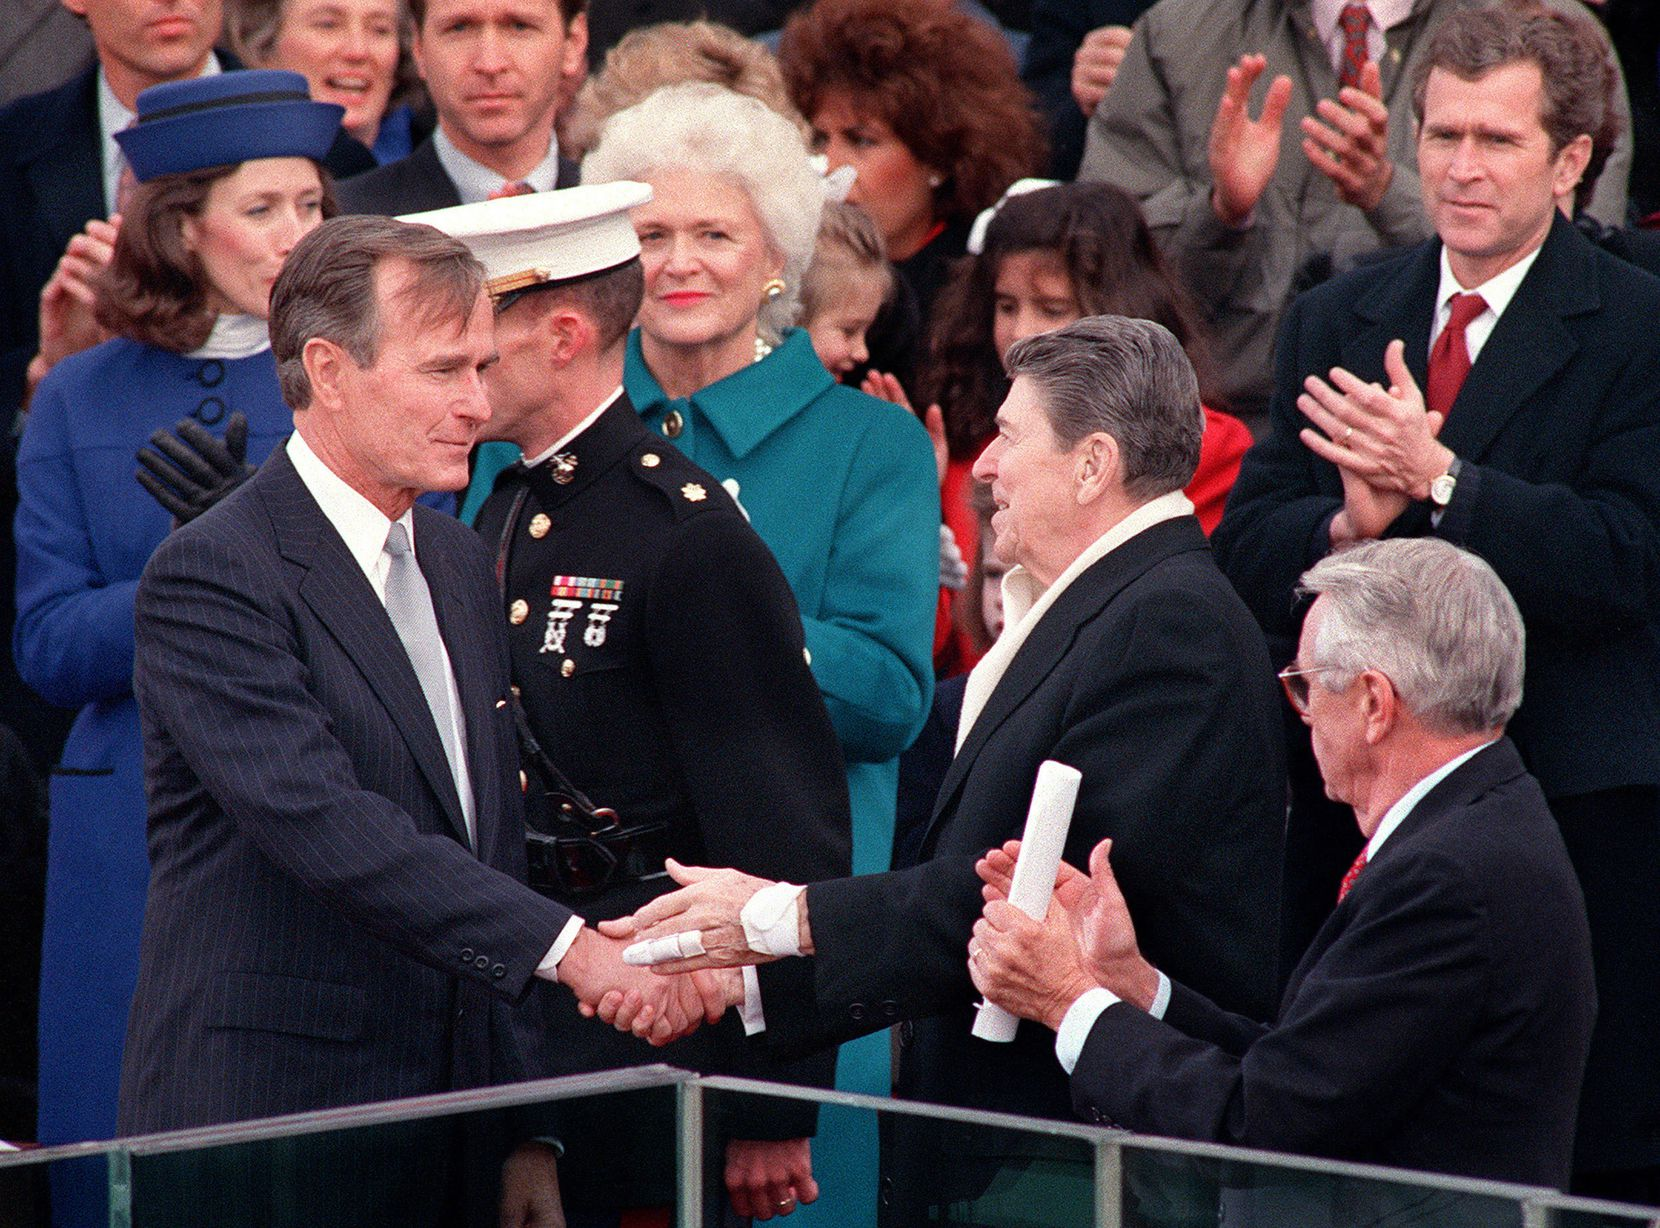 1989: Outgoing President Ronald Reagan congratulates newly inaugurated President George H.W. Bush as first lady Barbara Bush (center), George W. Bush (top right) and others applaud during the swearing-in ceremony.